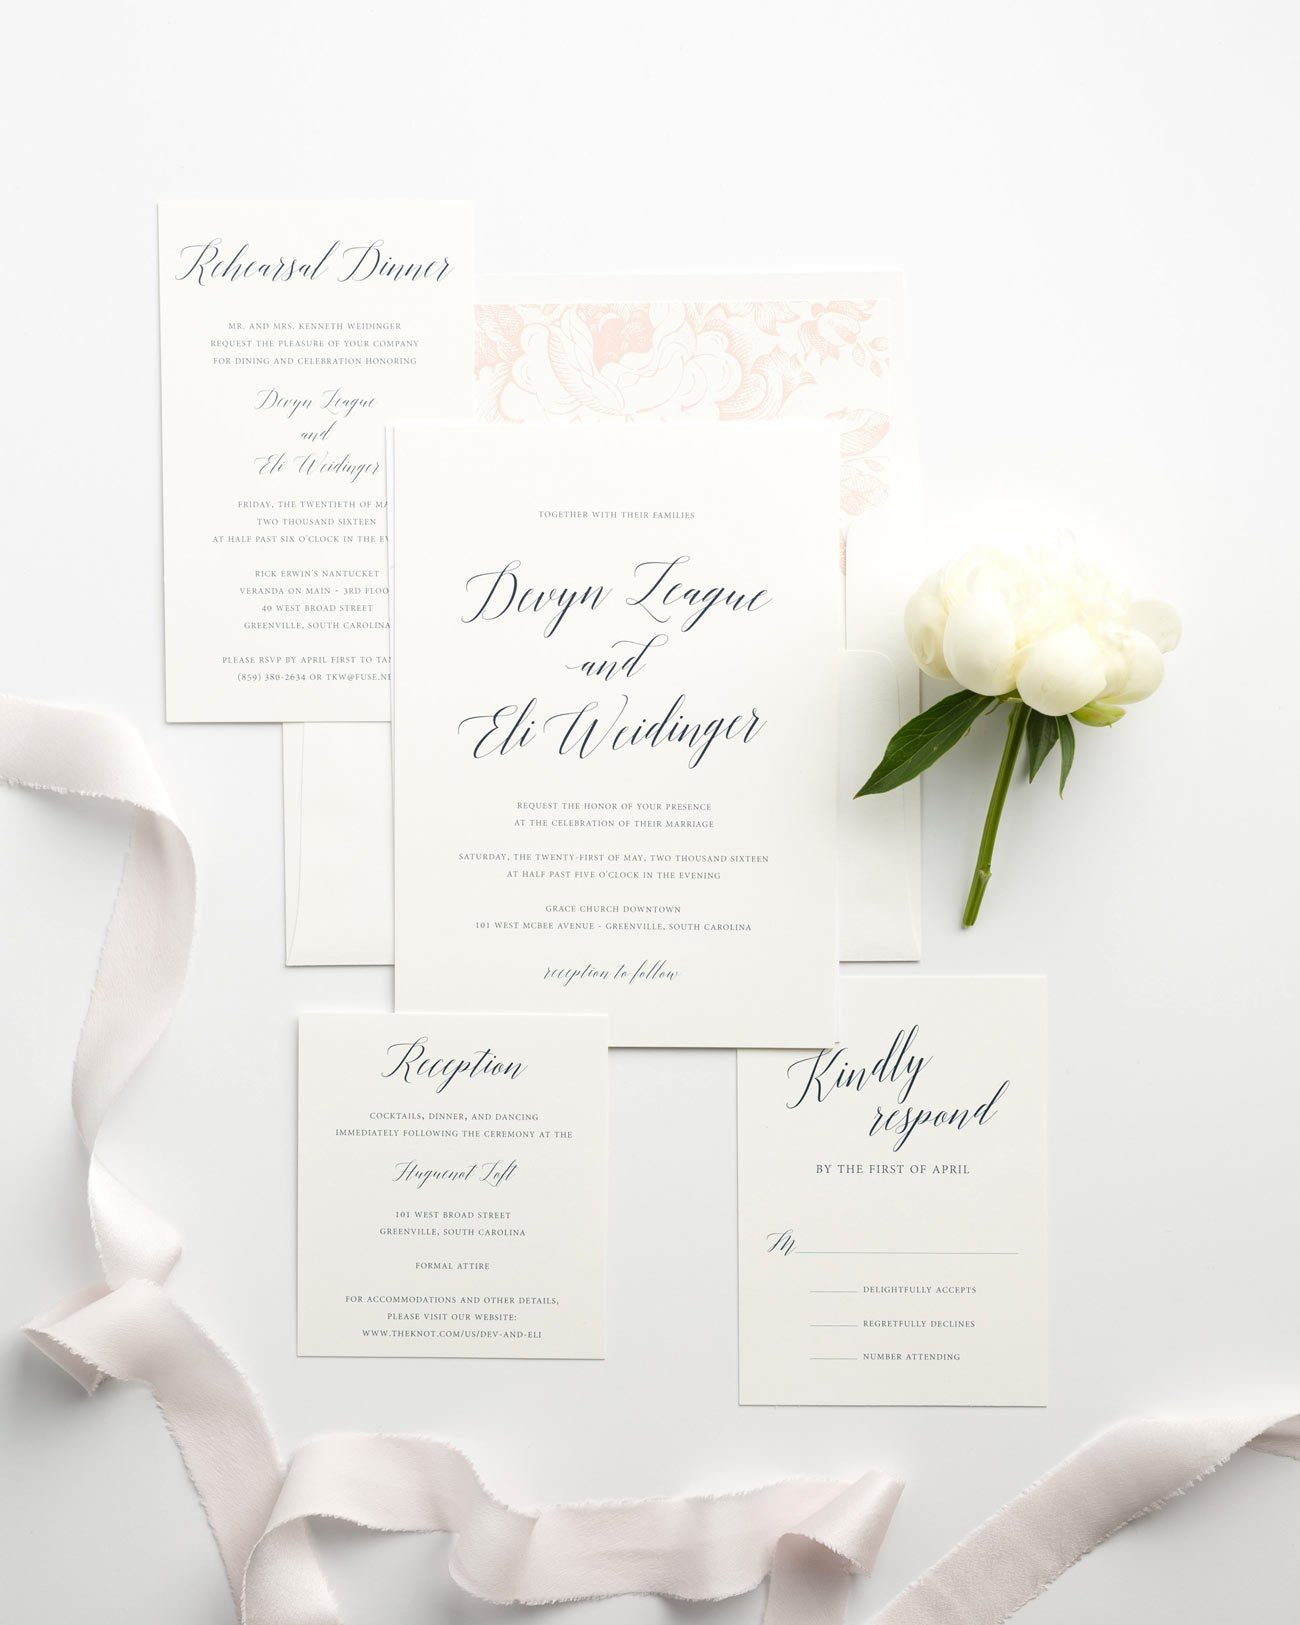 Romantic Garden Wedding Invitations with Modern Calligraphy with Floral, Navy, and Blush accents